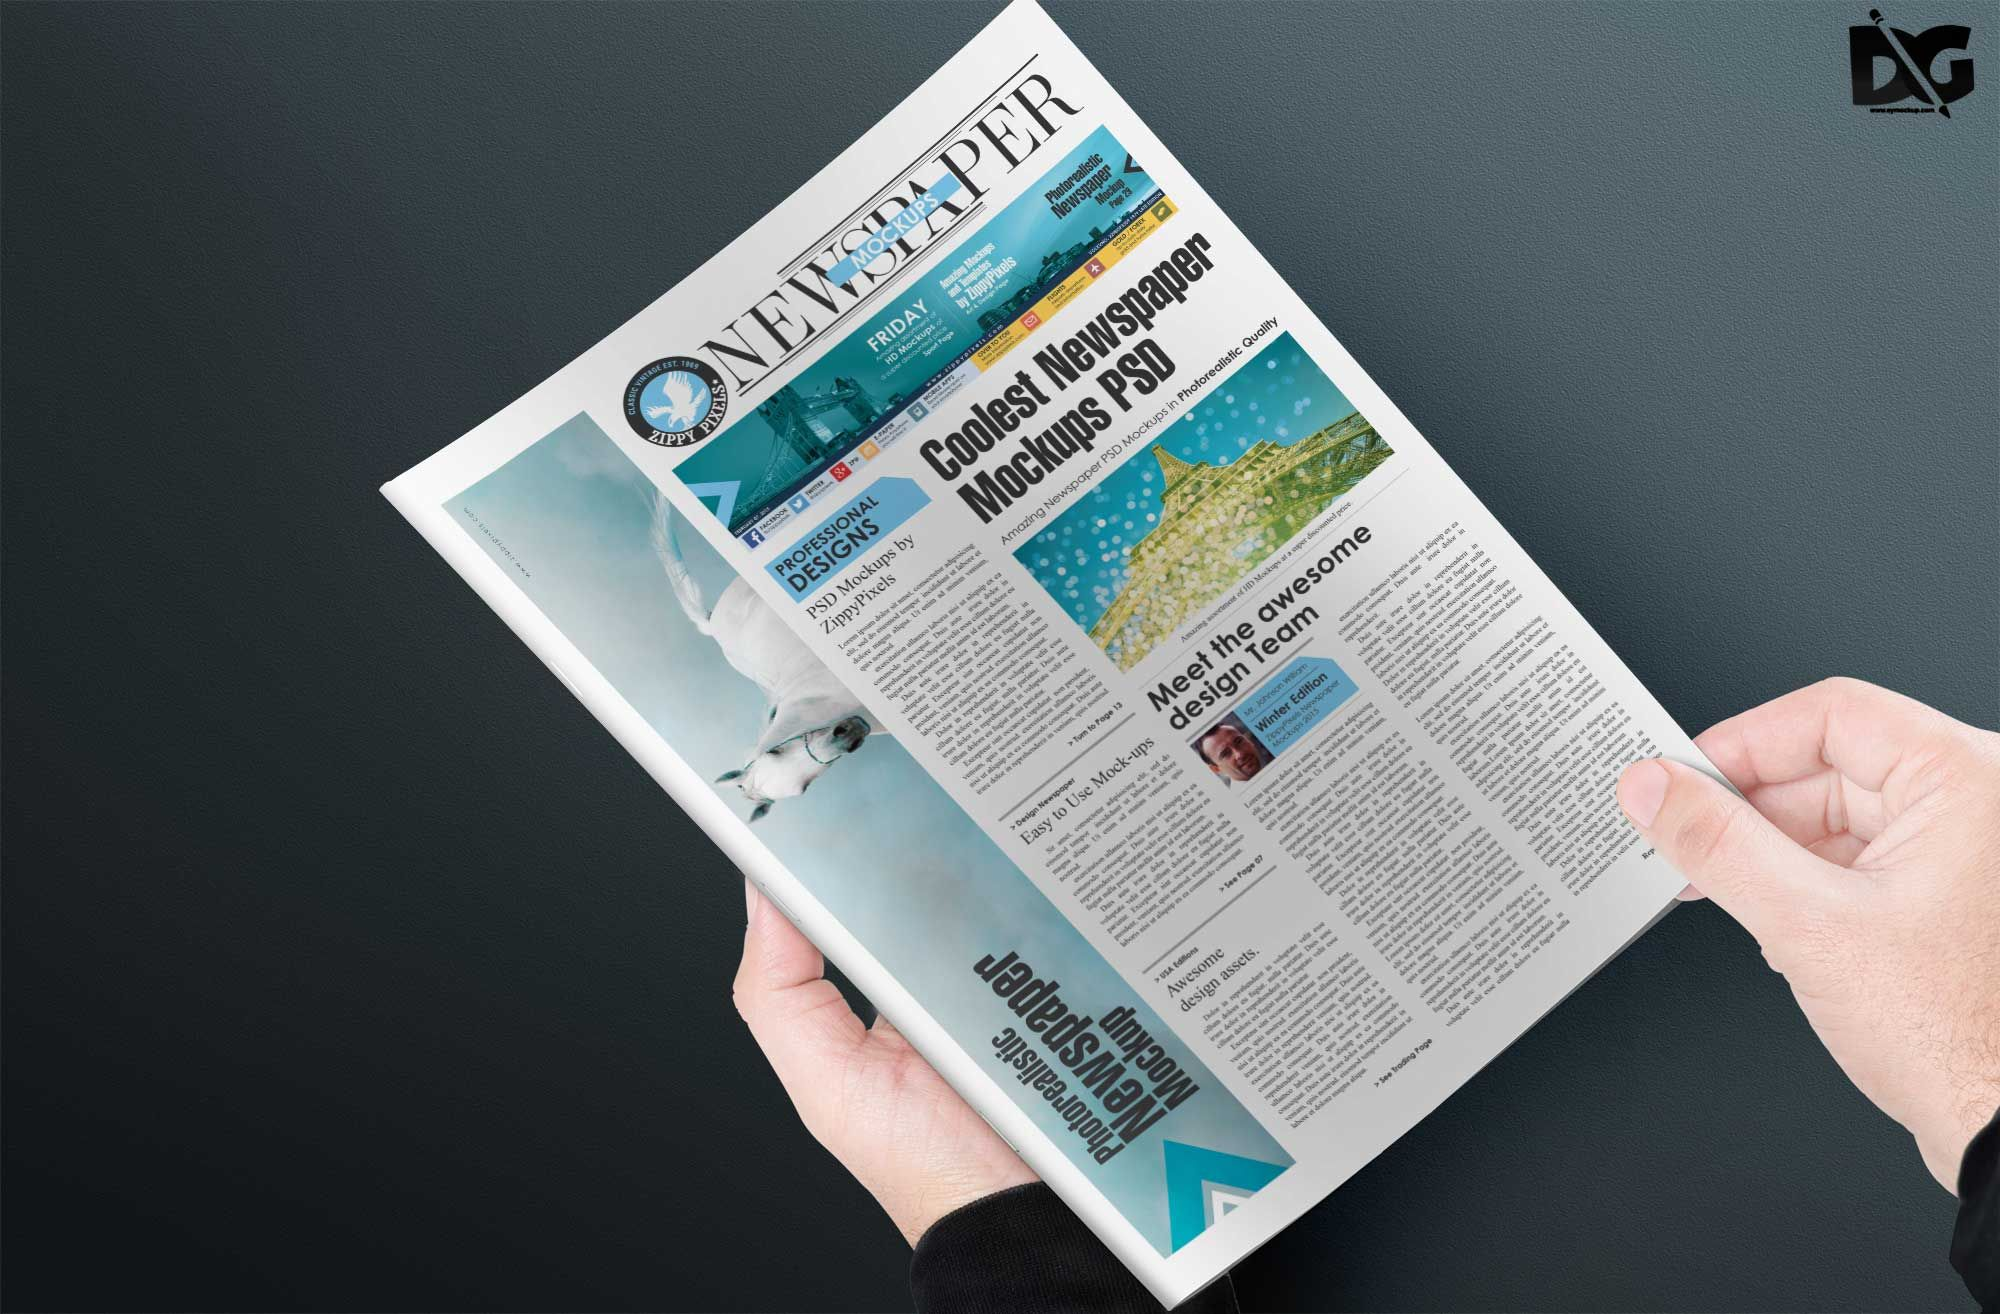 Free Psd Business Magazine Pages Mockup Download Download2018 Downloadfree Downloadpsd Downloadtemplate Free Freemo Mockup Free Psd Free Psd Mockup Psd